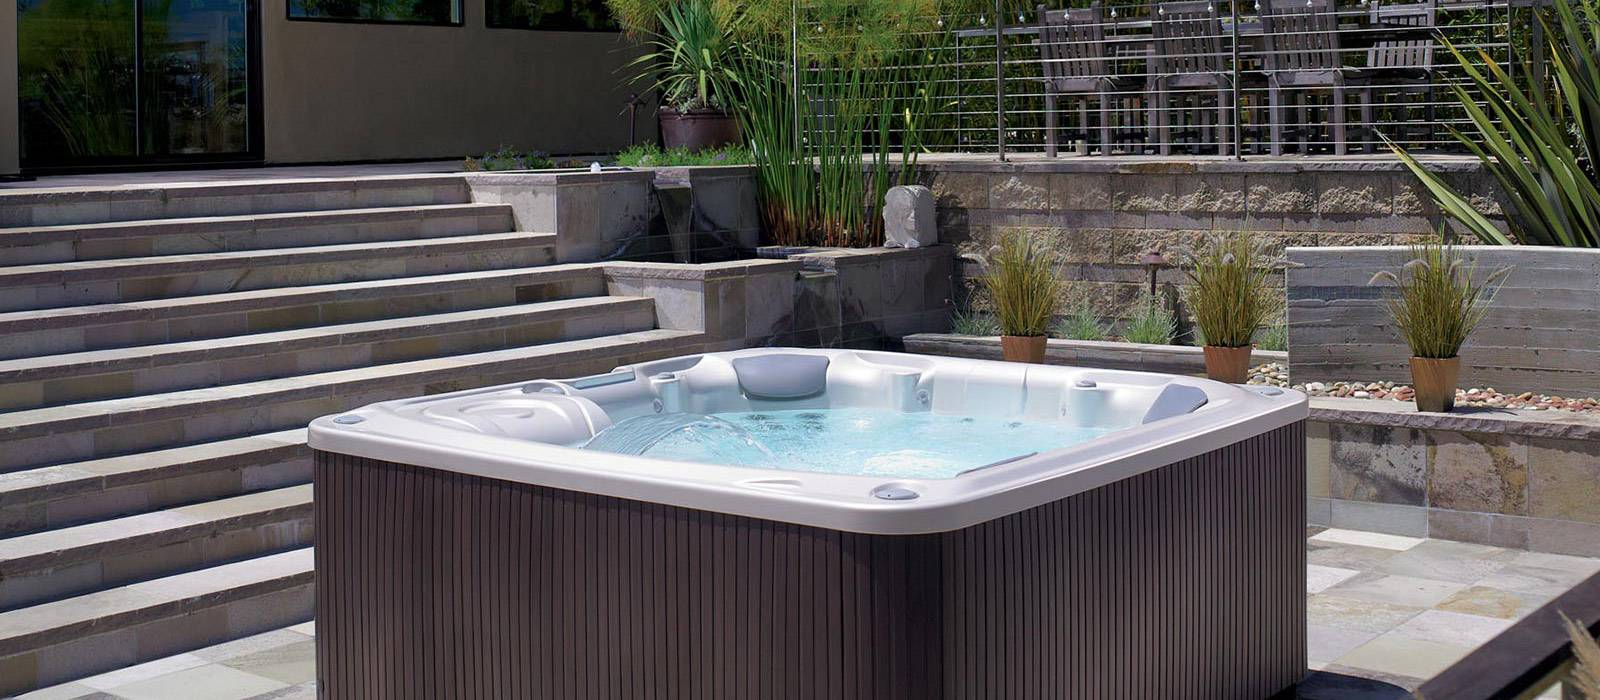 Caring for the Flair hot tub is easy with the optional ACE® saltwater system and EverFresh® water care system. Both systems continuously clean the hot tub with innovative technology.